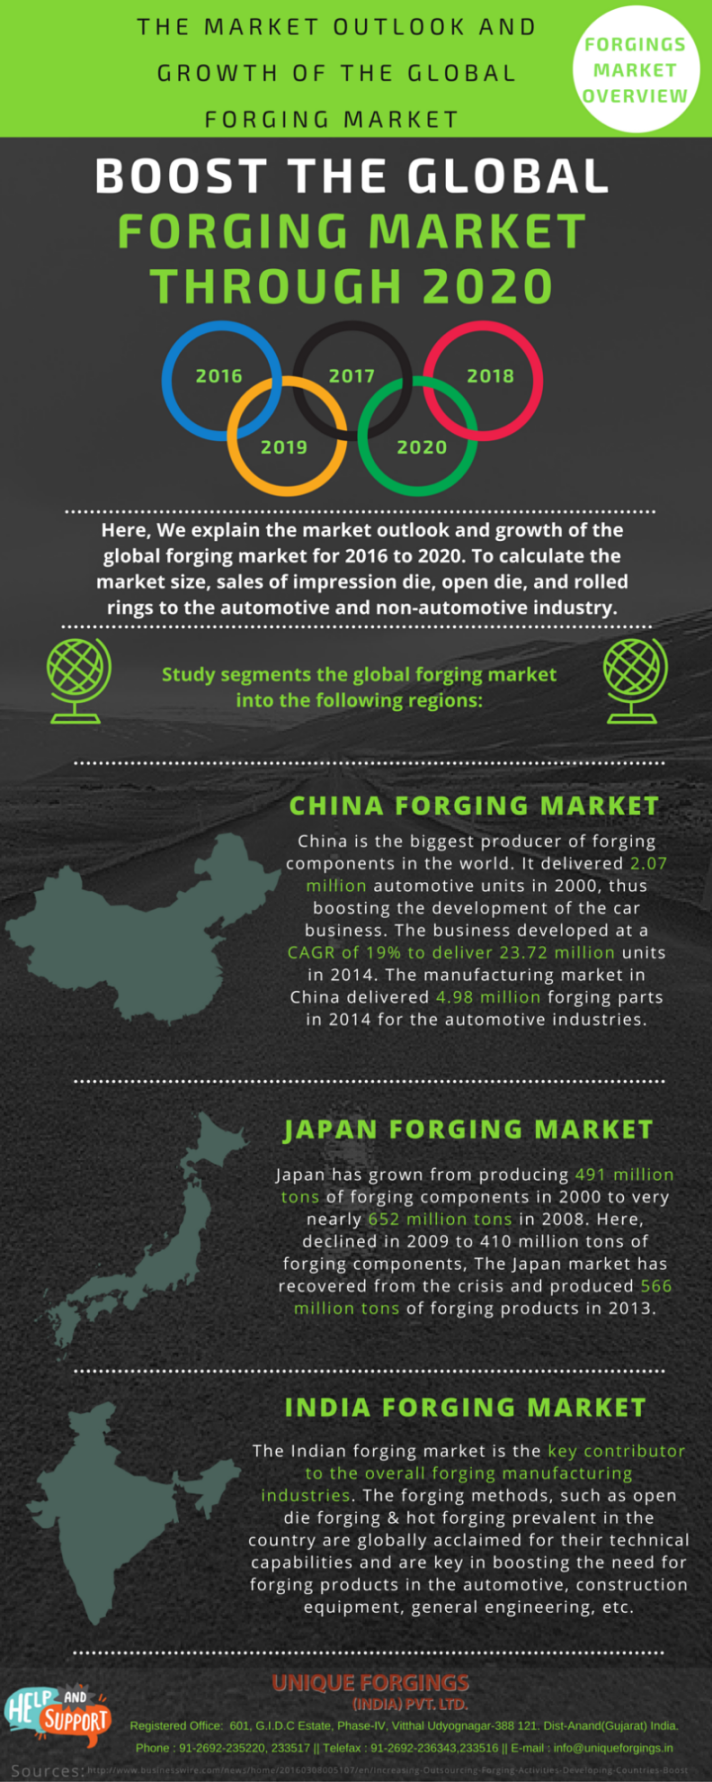 Boost the Global Forging Market Through 2020